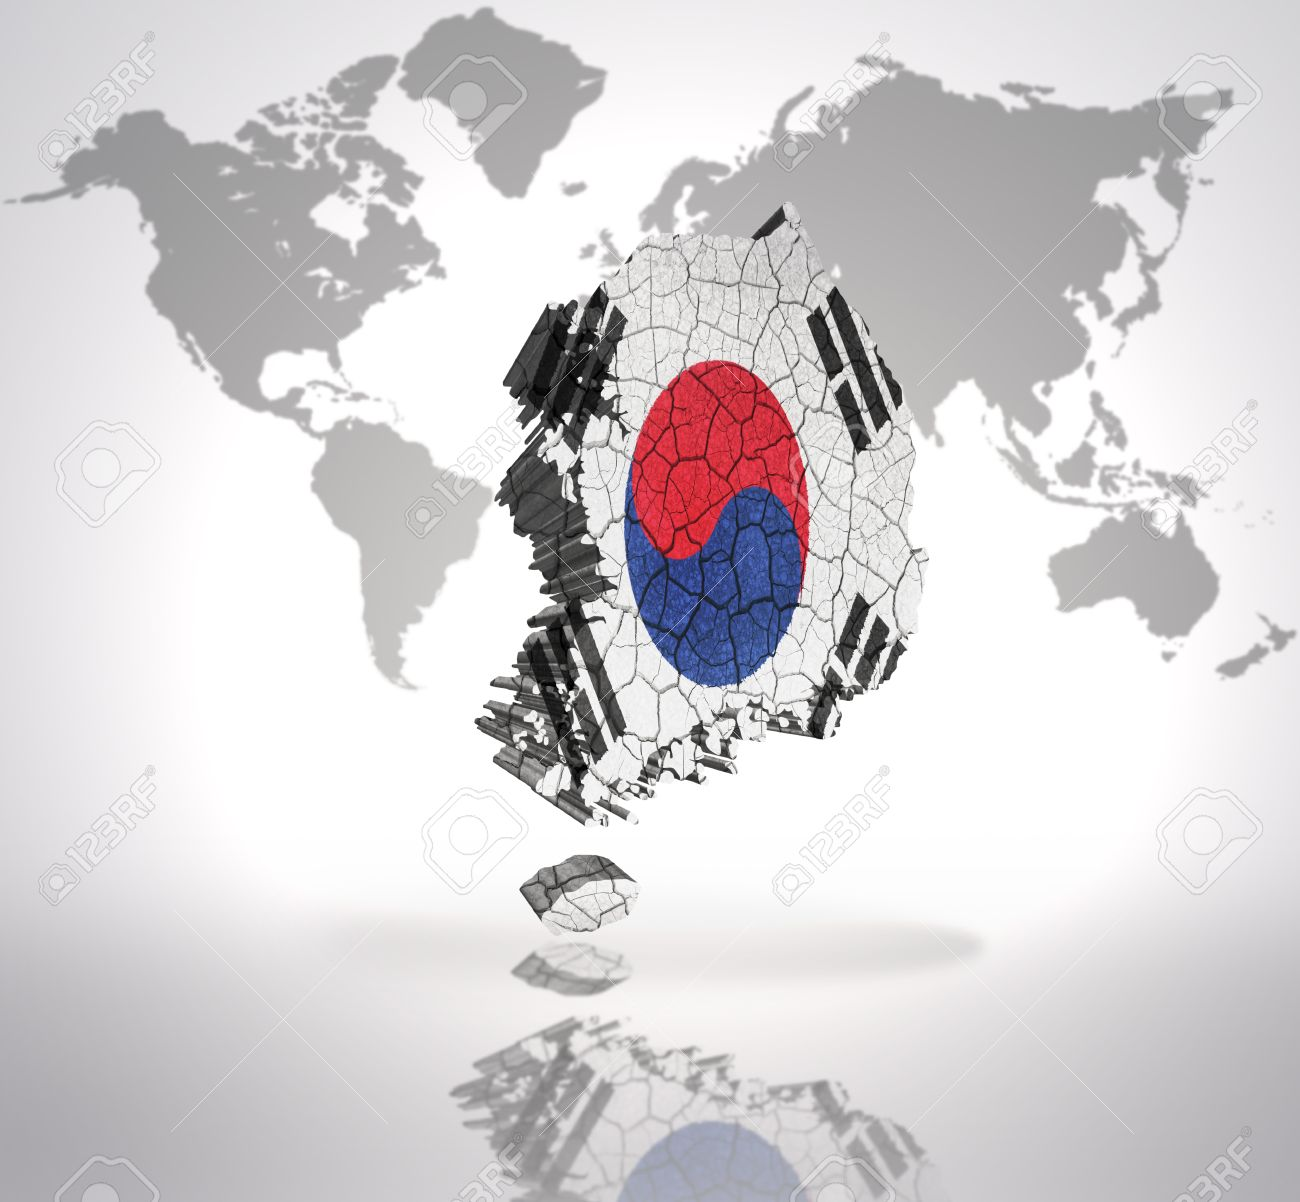 Map of south korea with korean flag on a world map background stock map of south korea with korean flag on a world map background stock photo 32873816 gumiabroncs Gallery